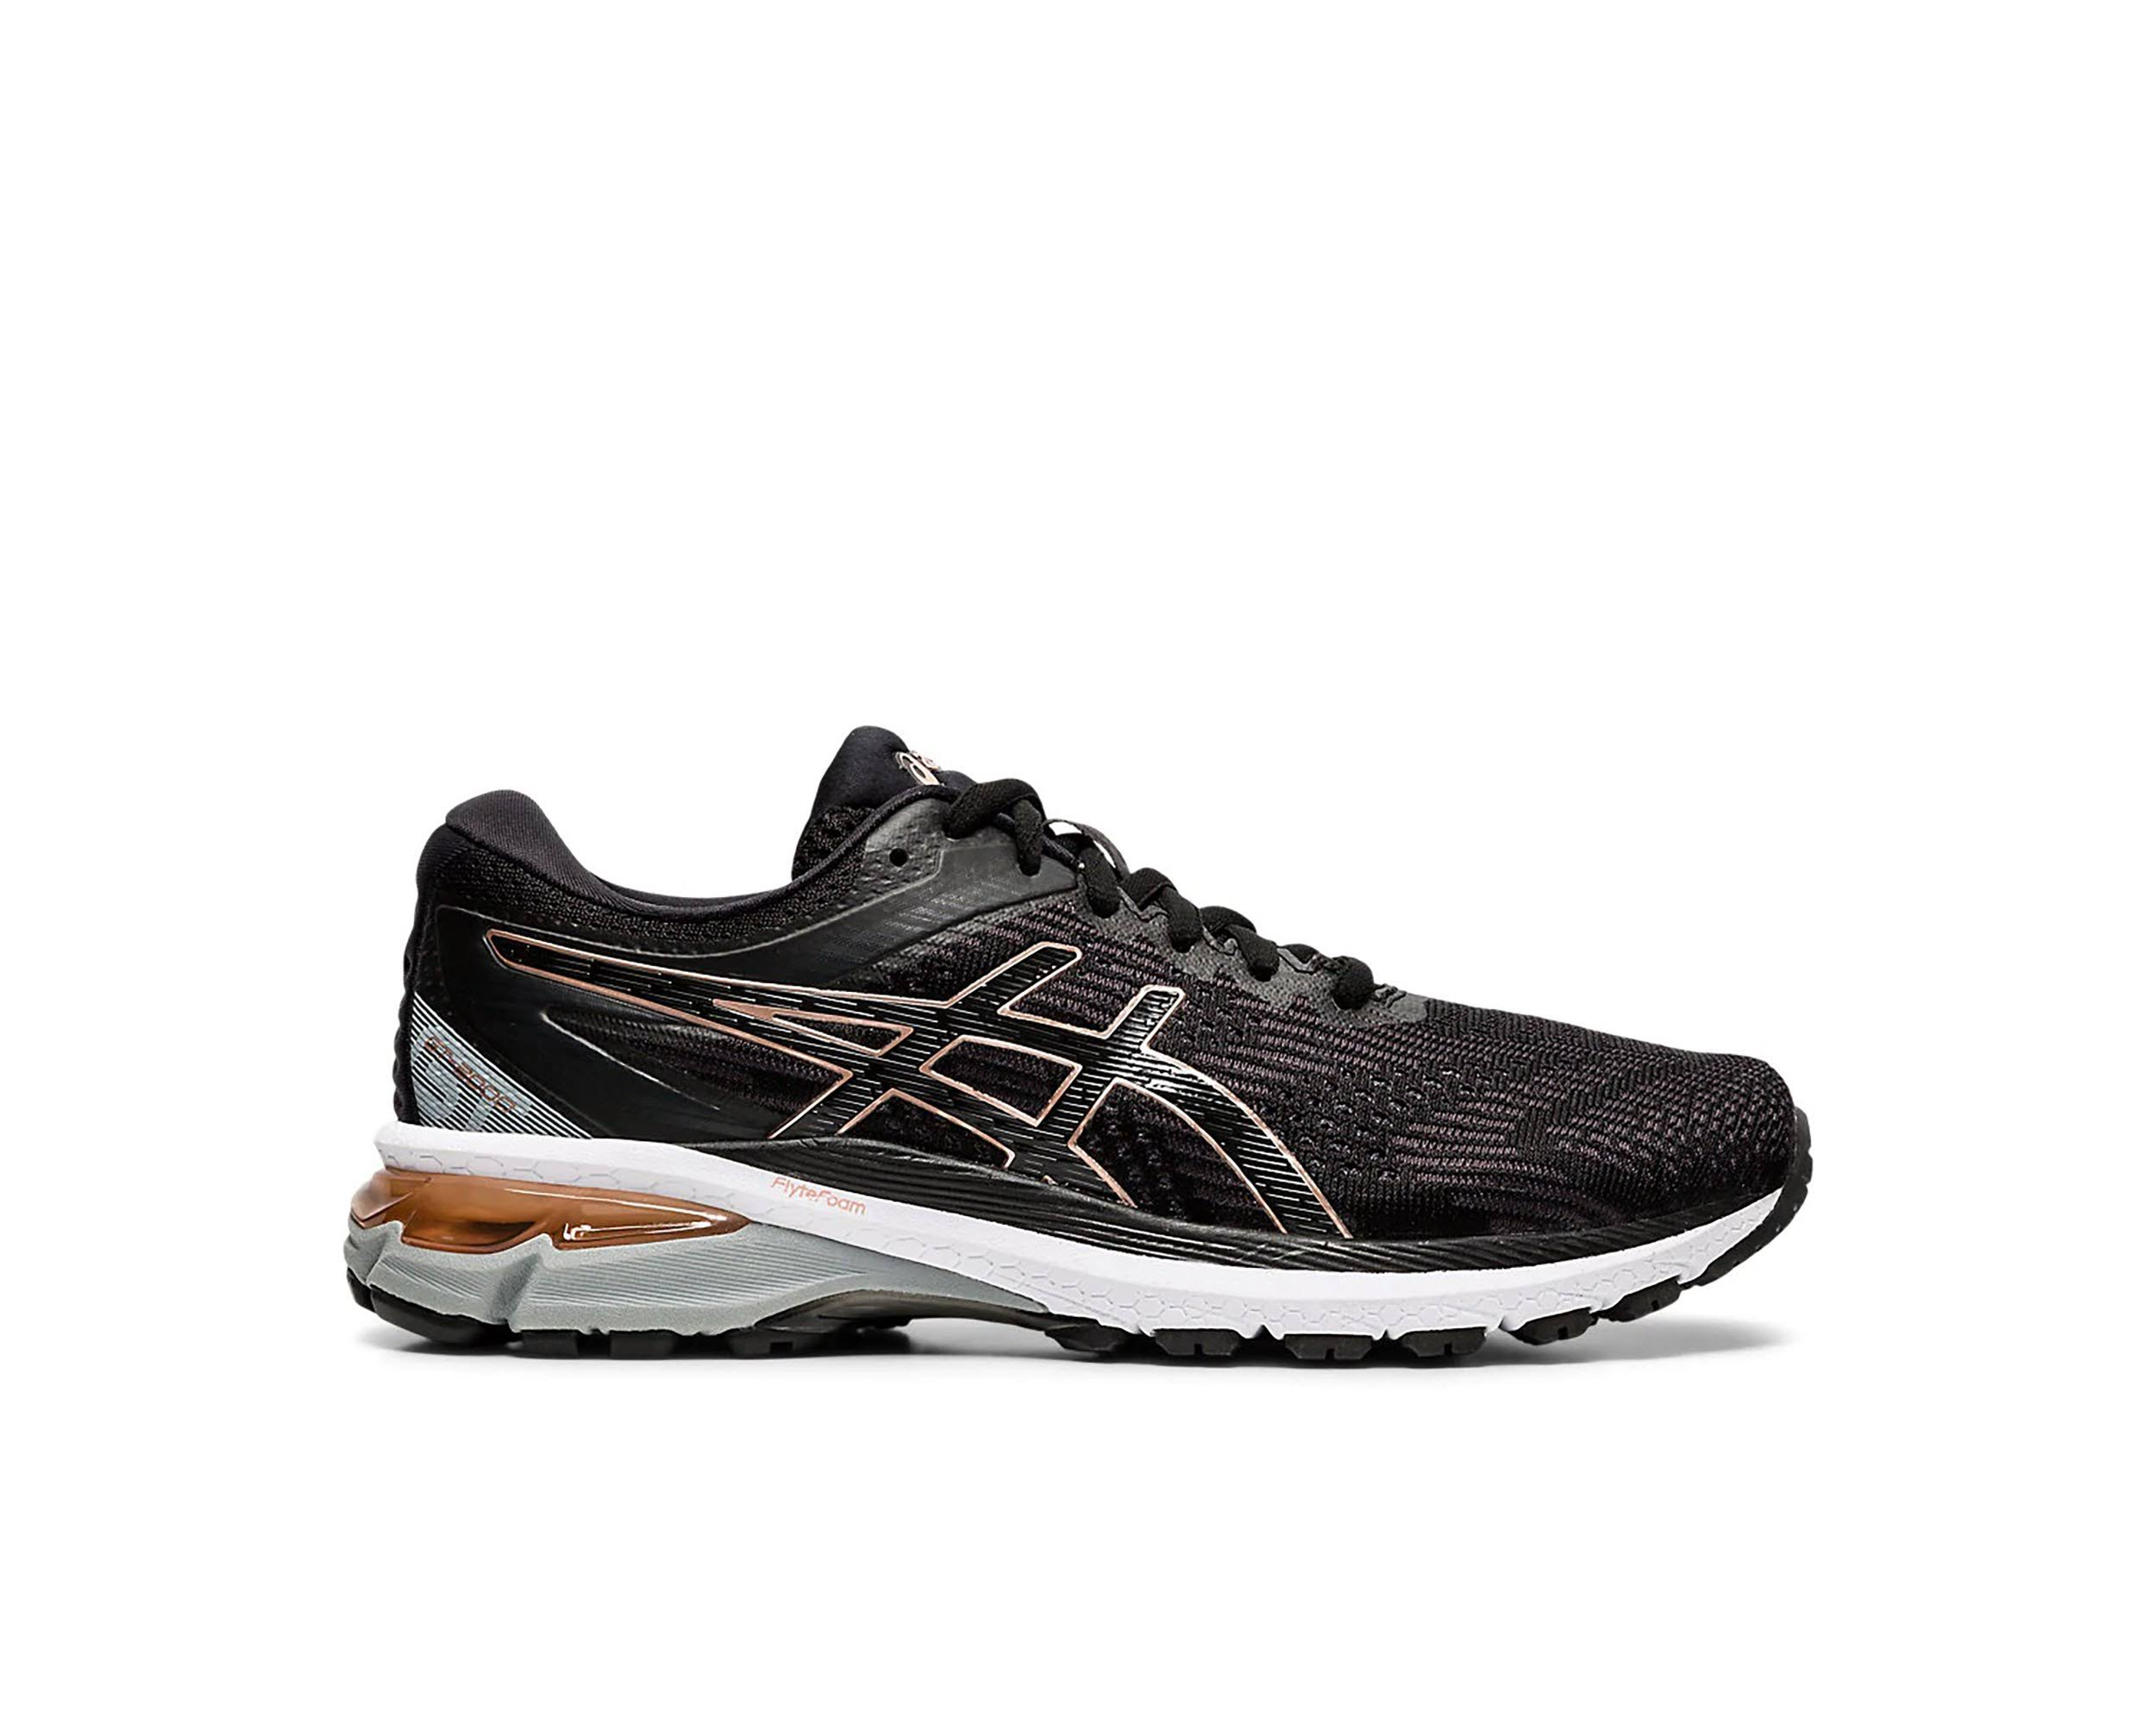 Asics Women's GT 2000 8 - Black - Rose Gold - 8.5 - D